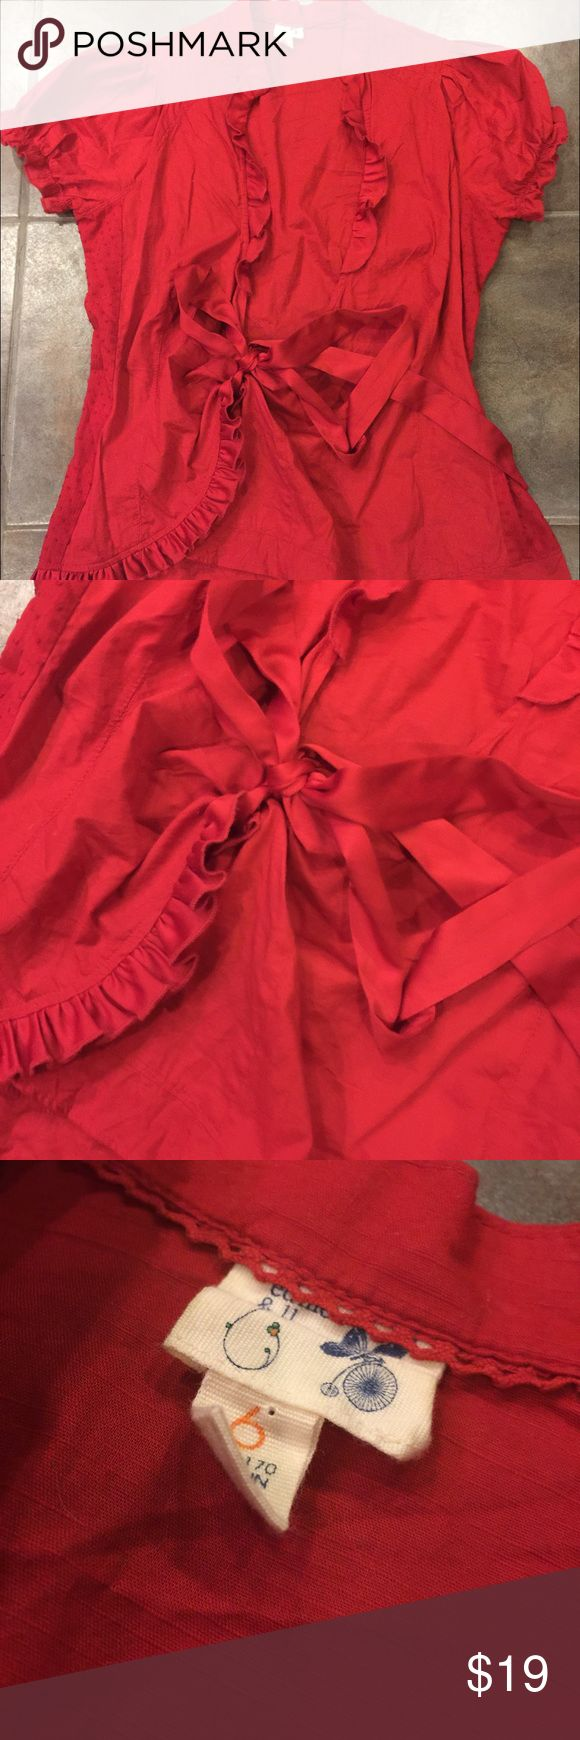 ANTHROPOLOGIE Edme & Esyllte Red Short Sleeve Top Gorgeous Short Sleeve tie front top from Anthropologie's Edme & Esyllte brand. Beautiful detailing, in excellent gently loved condition. Size 6. Anthropologie Tops